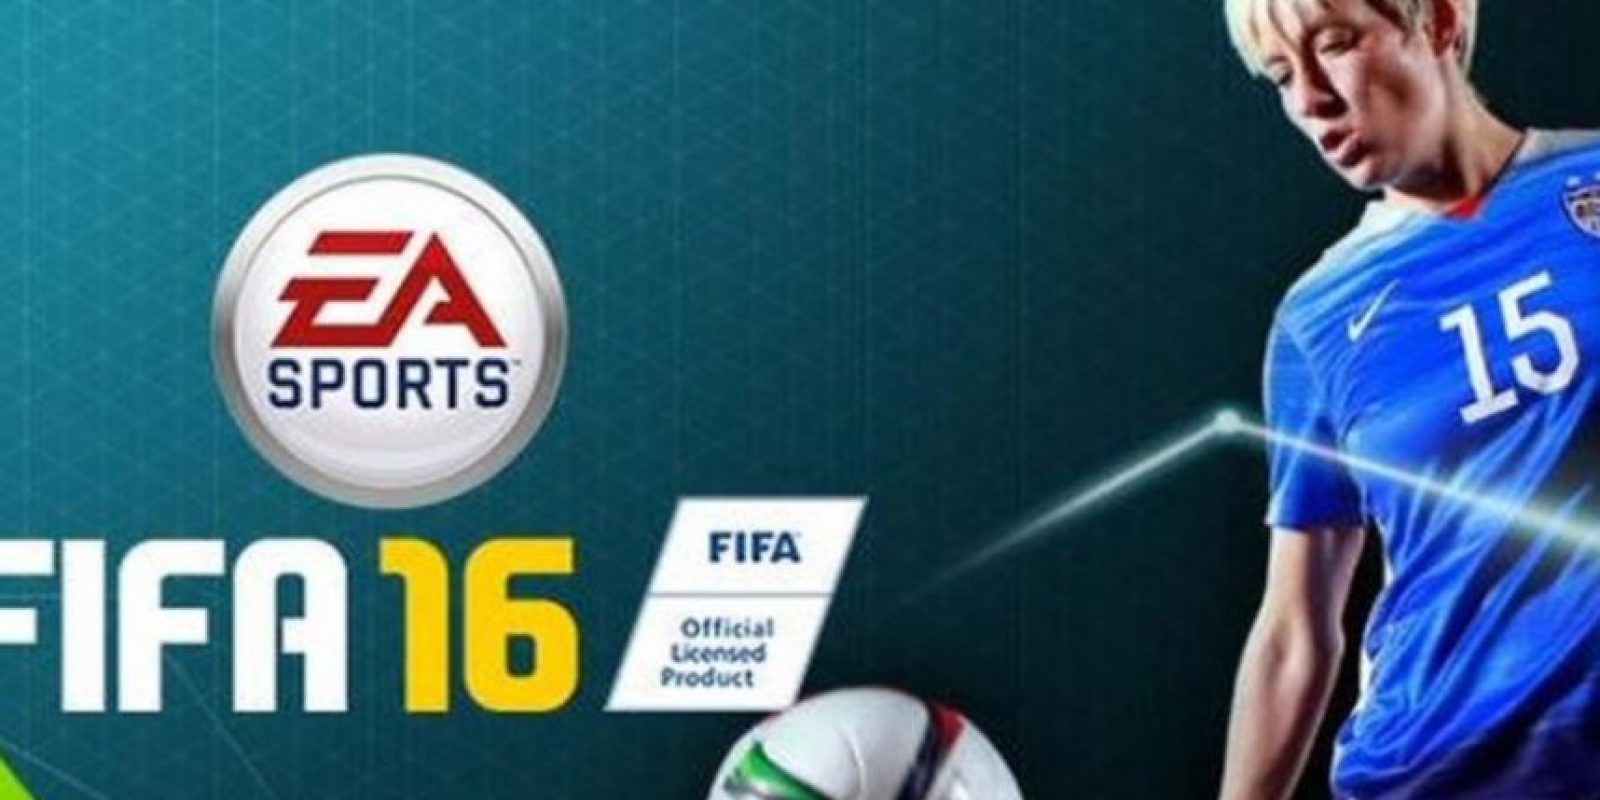 4) Agilidad en la defensa. Foto: EA Sports